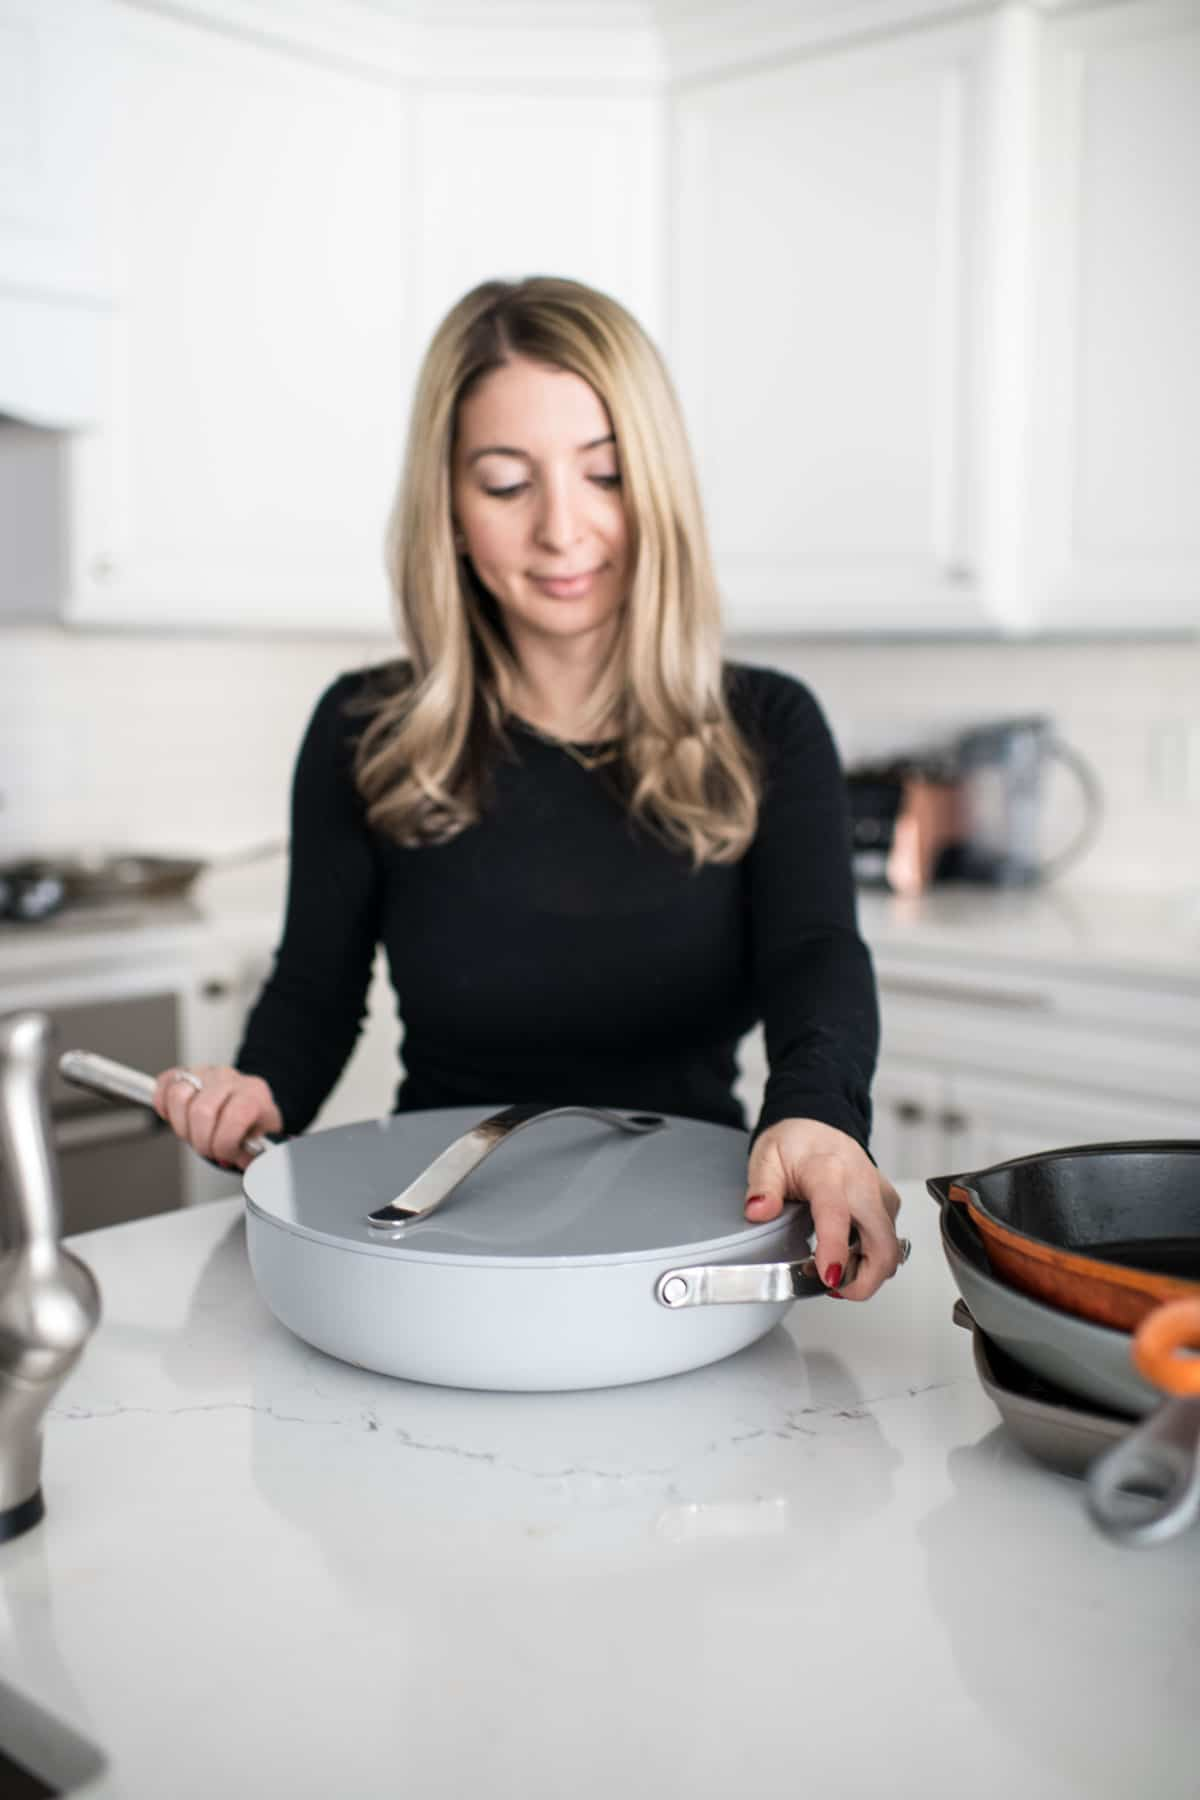 Woman with Caraway ceramic pan in kitchen